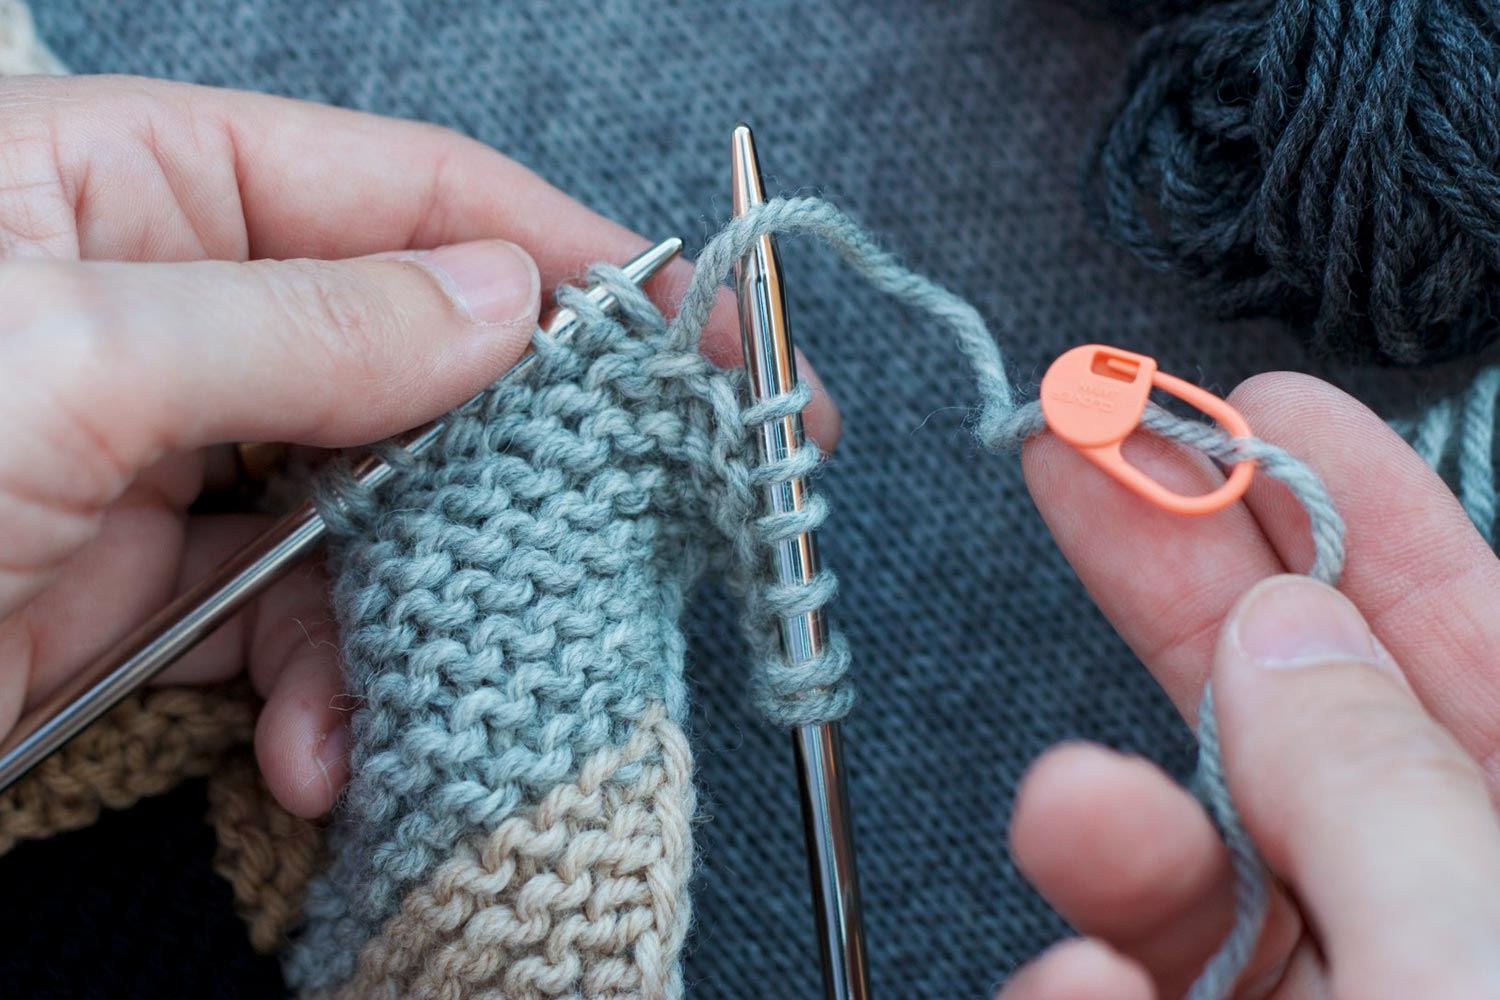 Six stitches unraveled on right needle and remaining stitches on left needle; right hand holds unraveled yarn with a stitch marker pinned several inches down its length.